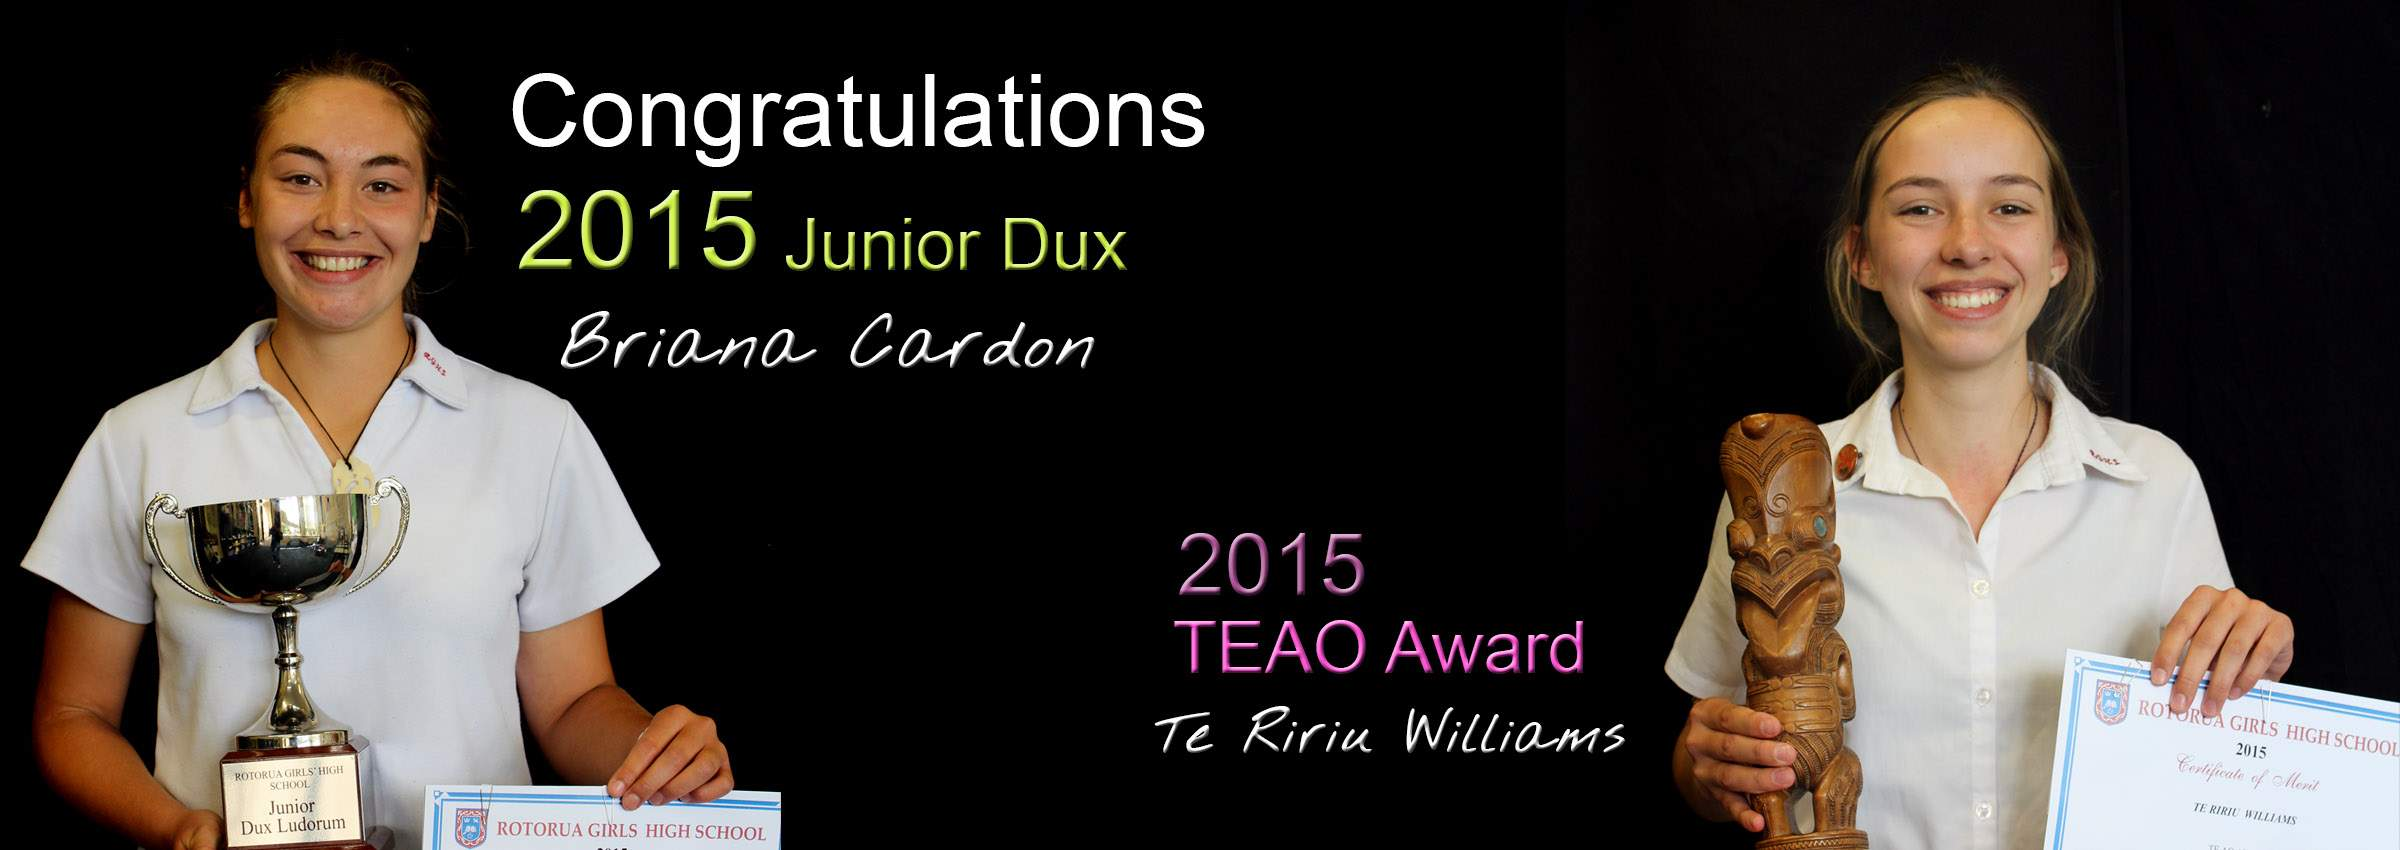 jnr dux and teao 2015